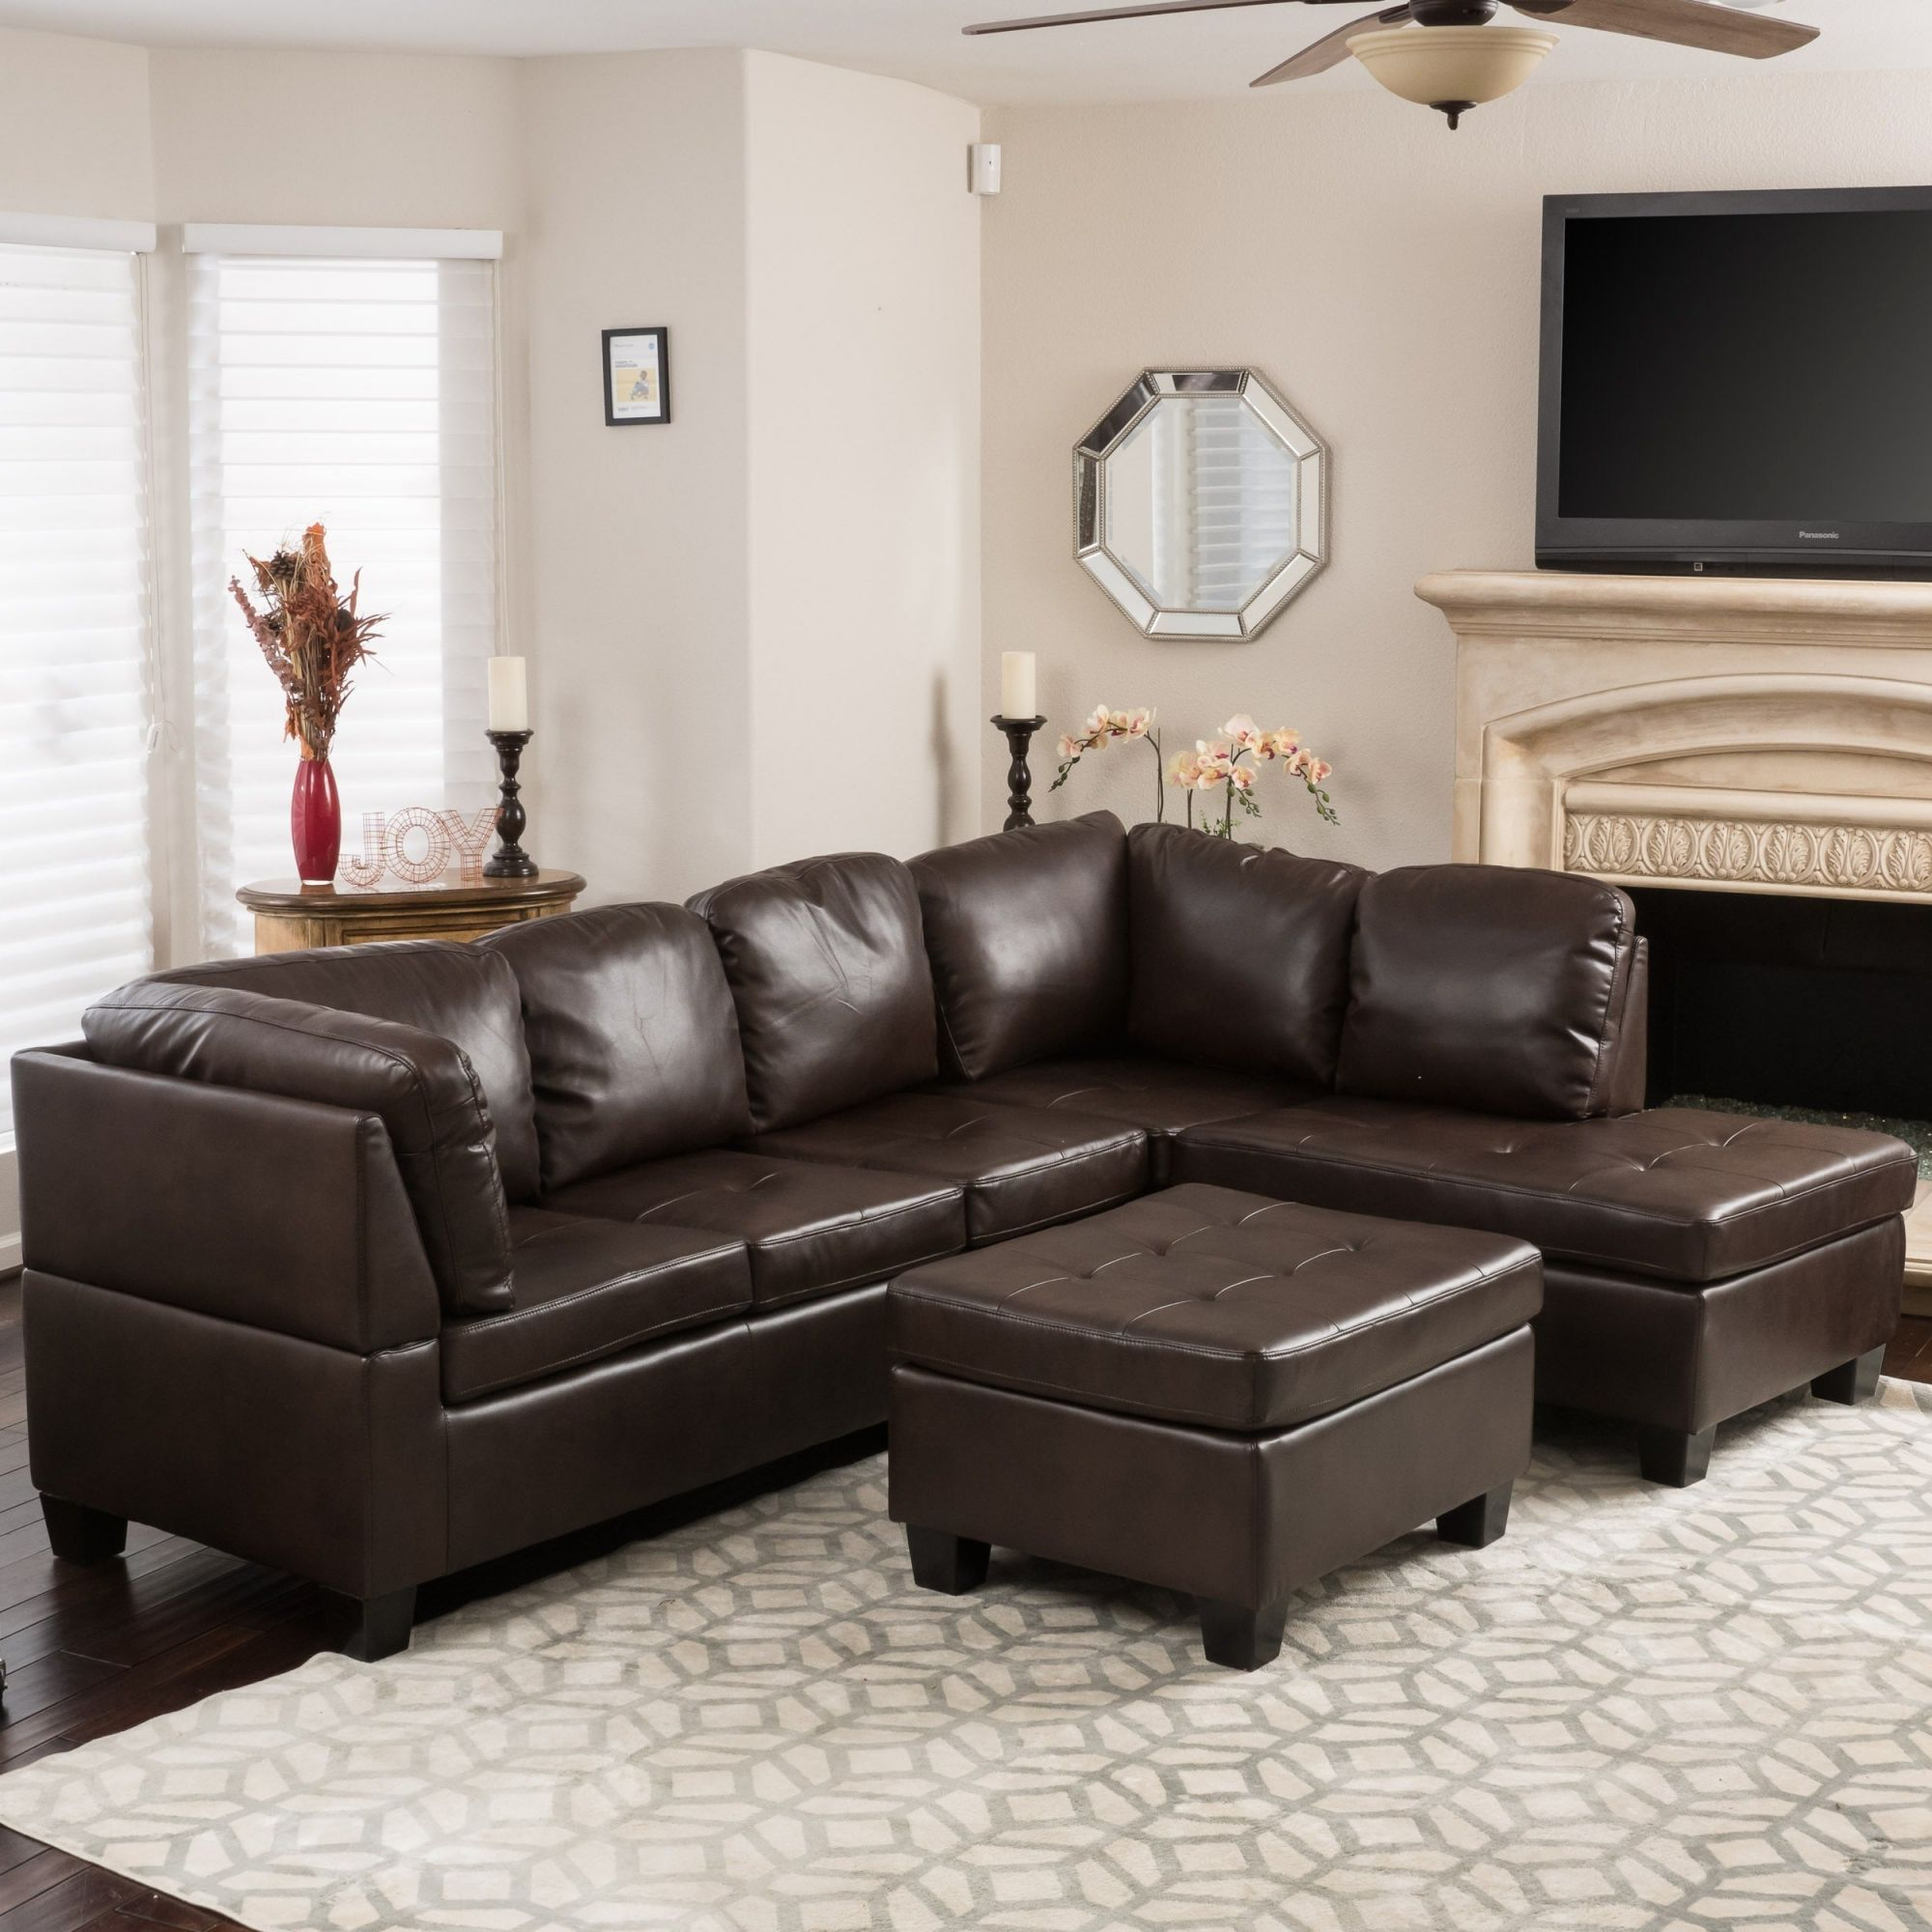 Shop Canterbury 3-Piece Pu Leather Sectional Sofa Setchristopher intended for Best of Leather Sectional Sofa